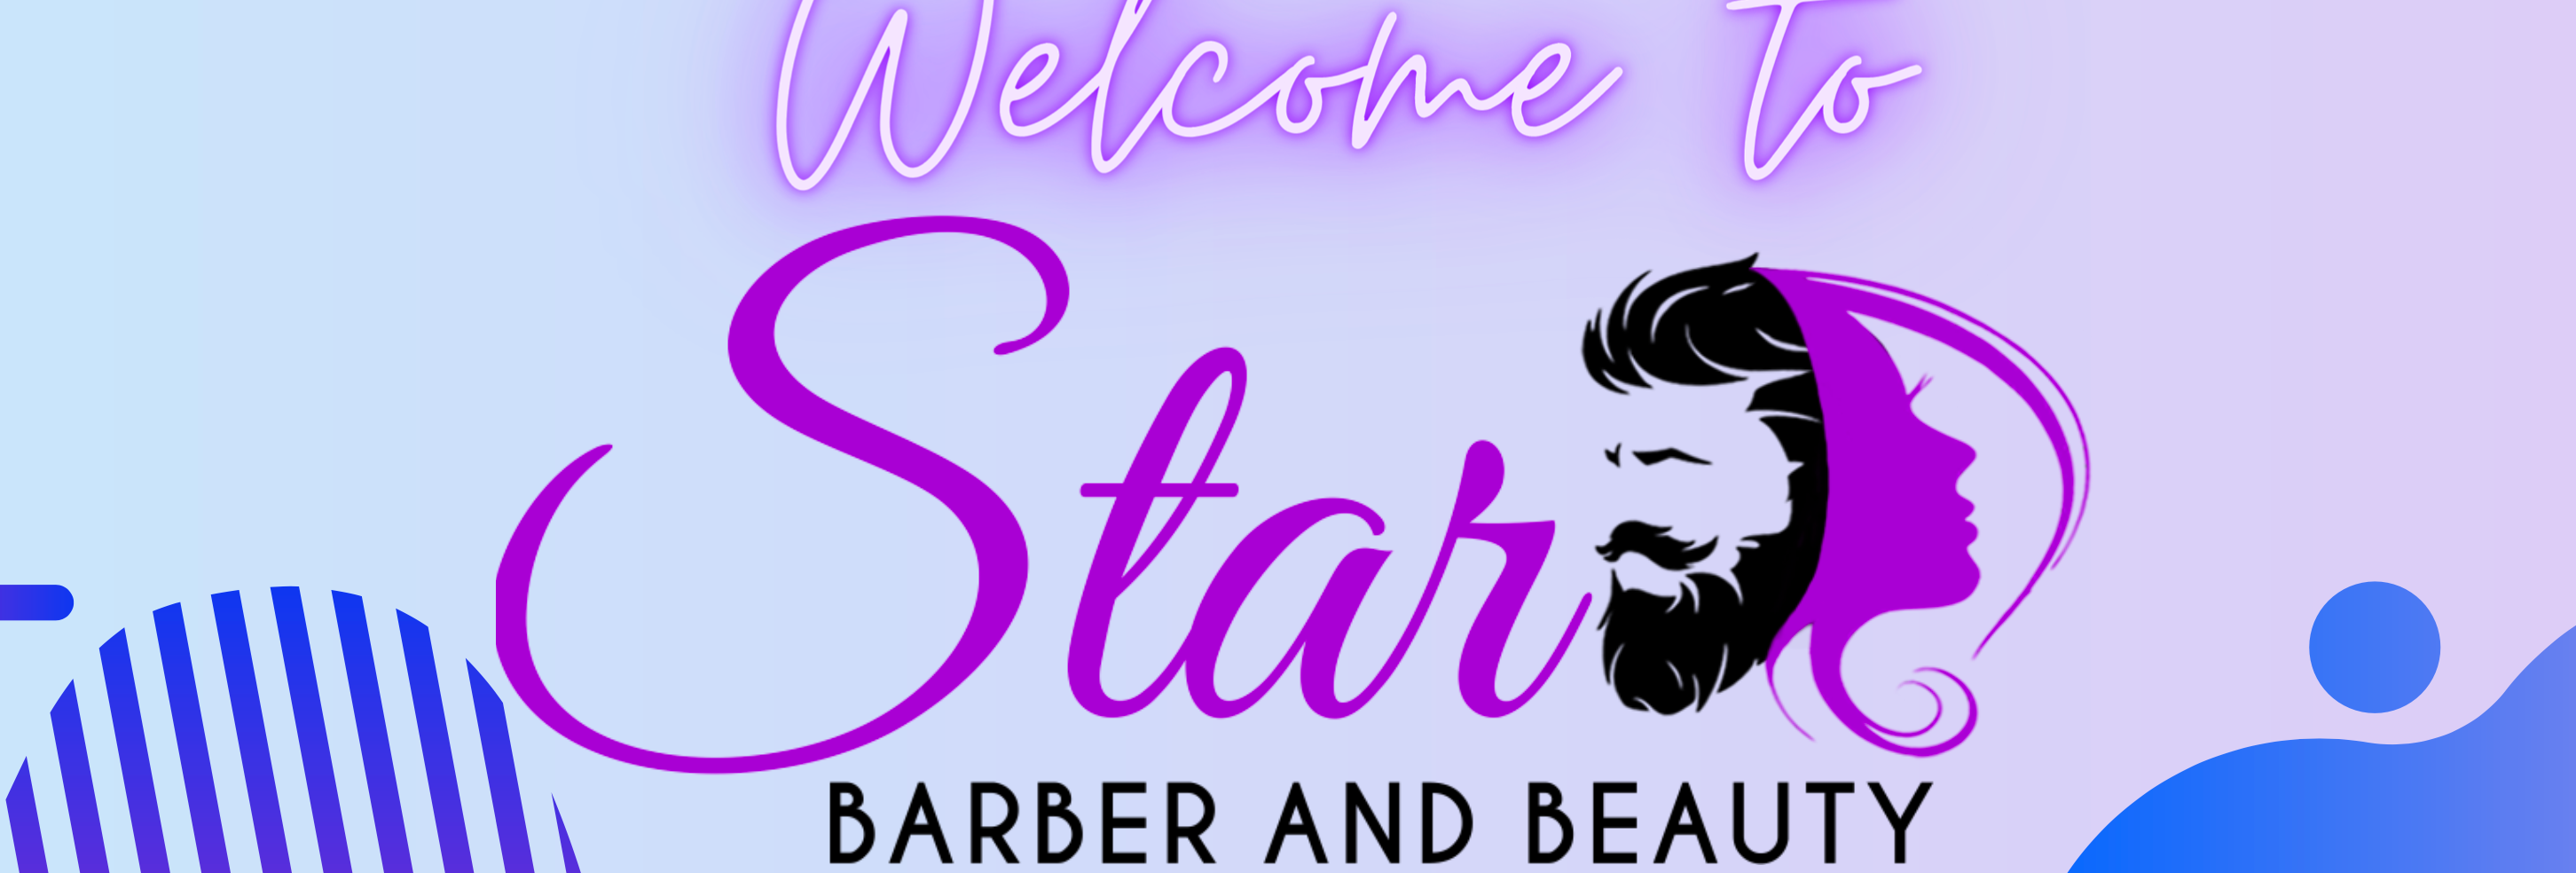 Star Barber  Beauty Salon in Tyler TX Is Ready to Transform Hair Looks This Christmas